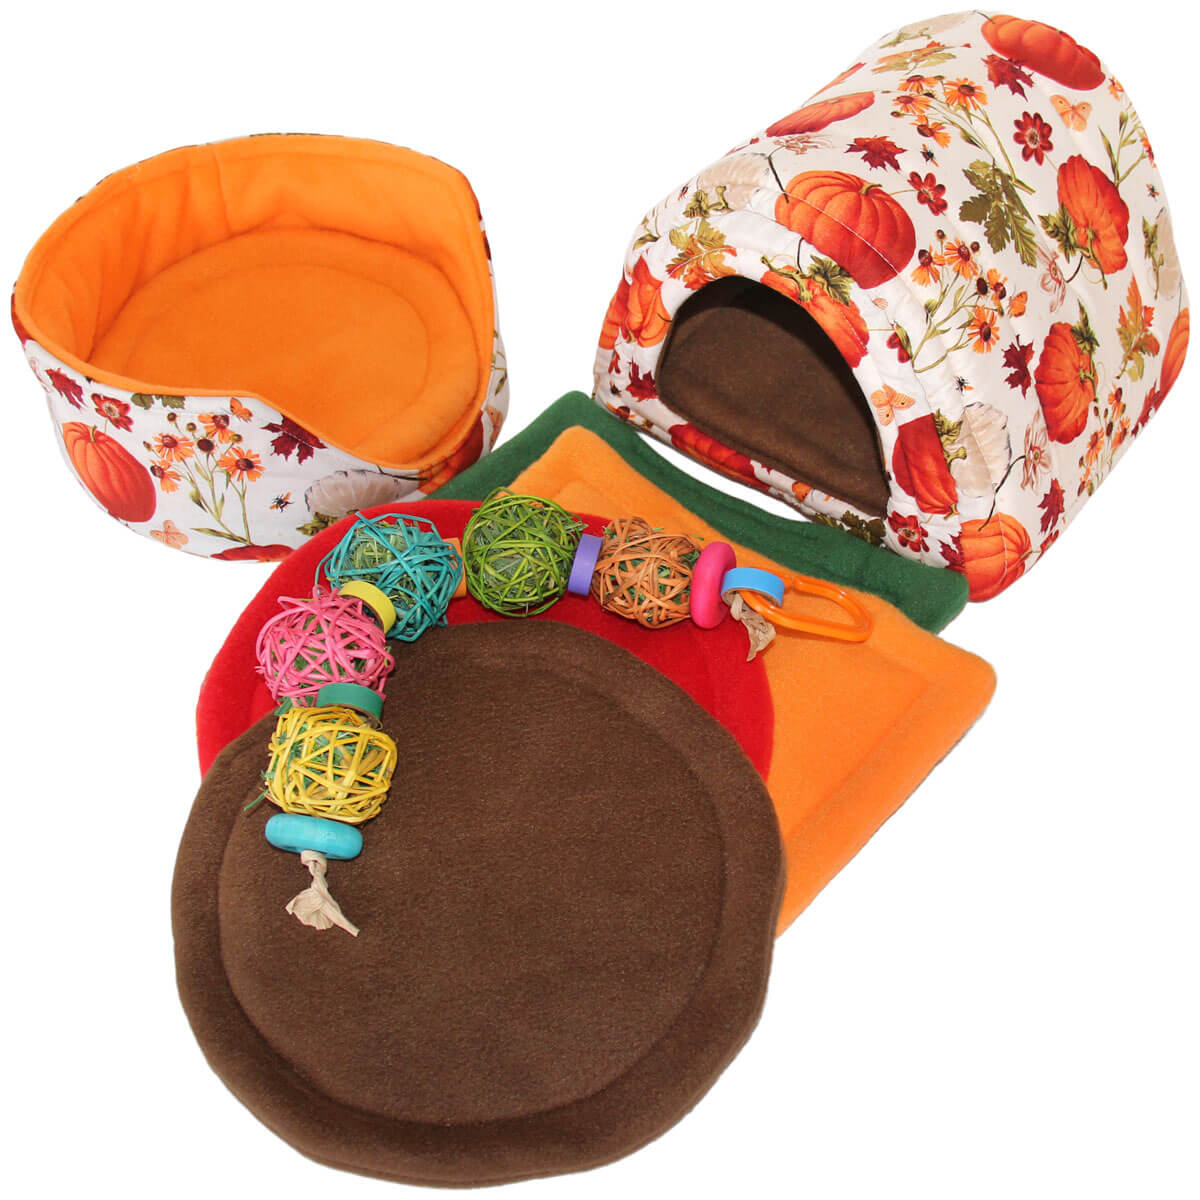 Large Pumpkin Harvest Cozy and Toy Bundle for Guinea Pigs and Other Small Animals